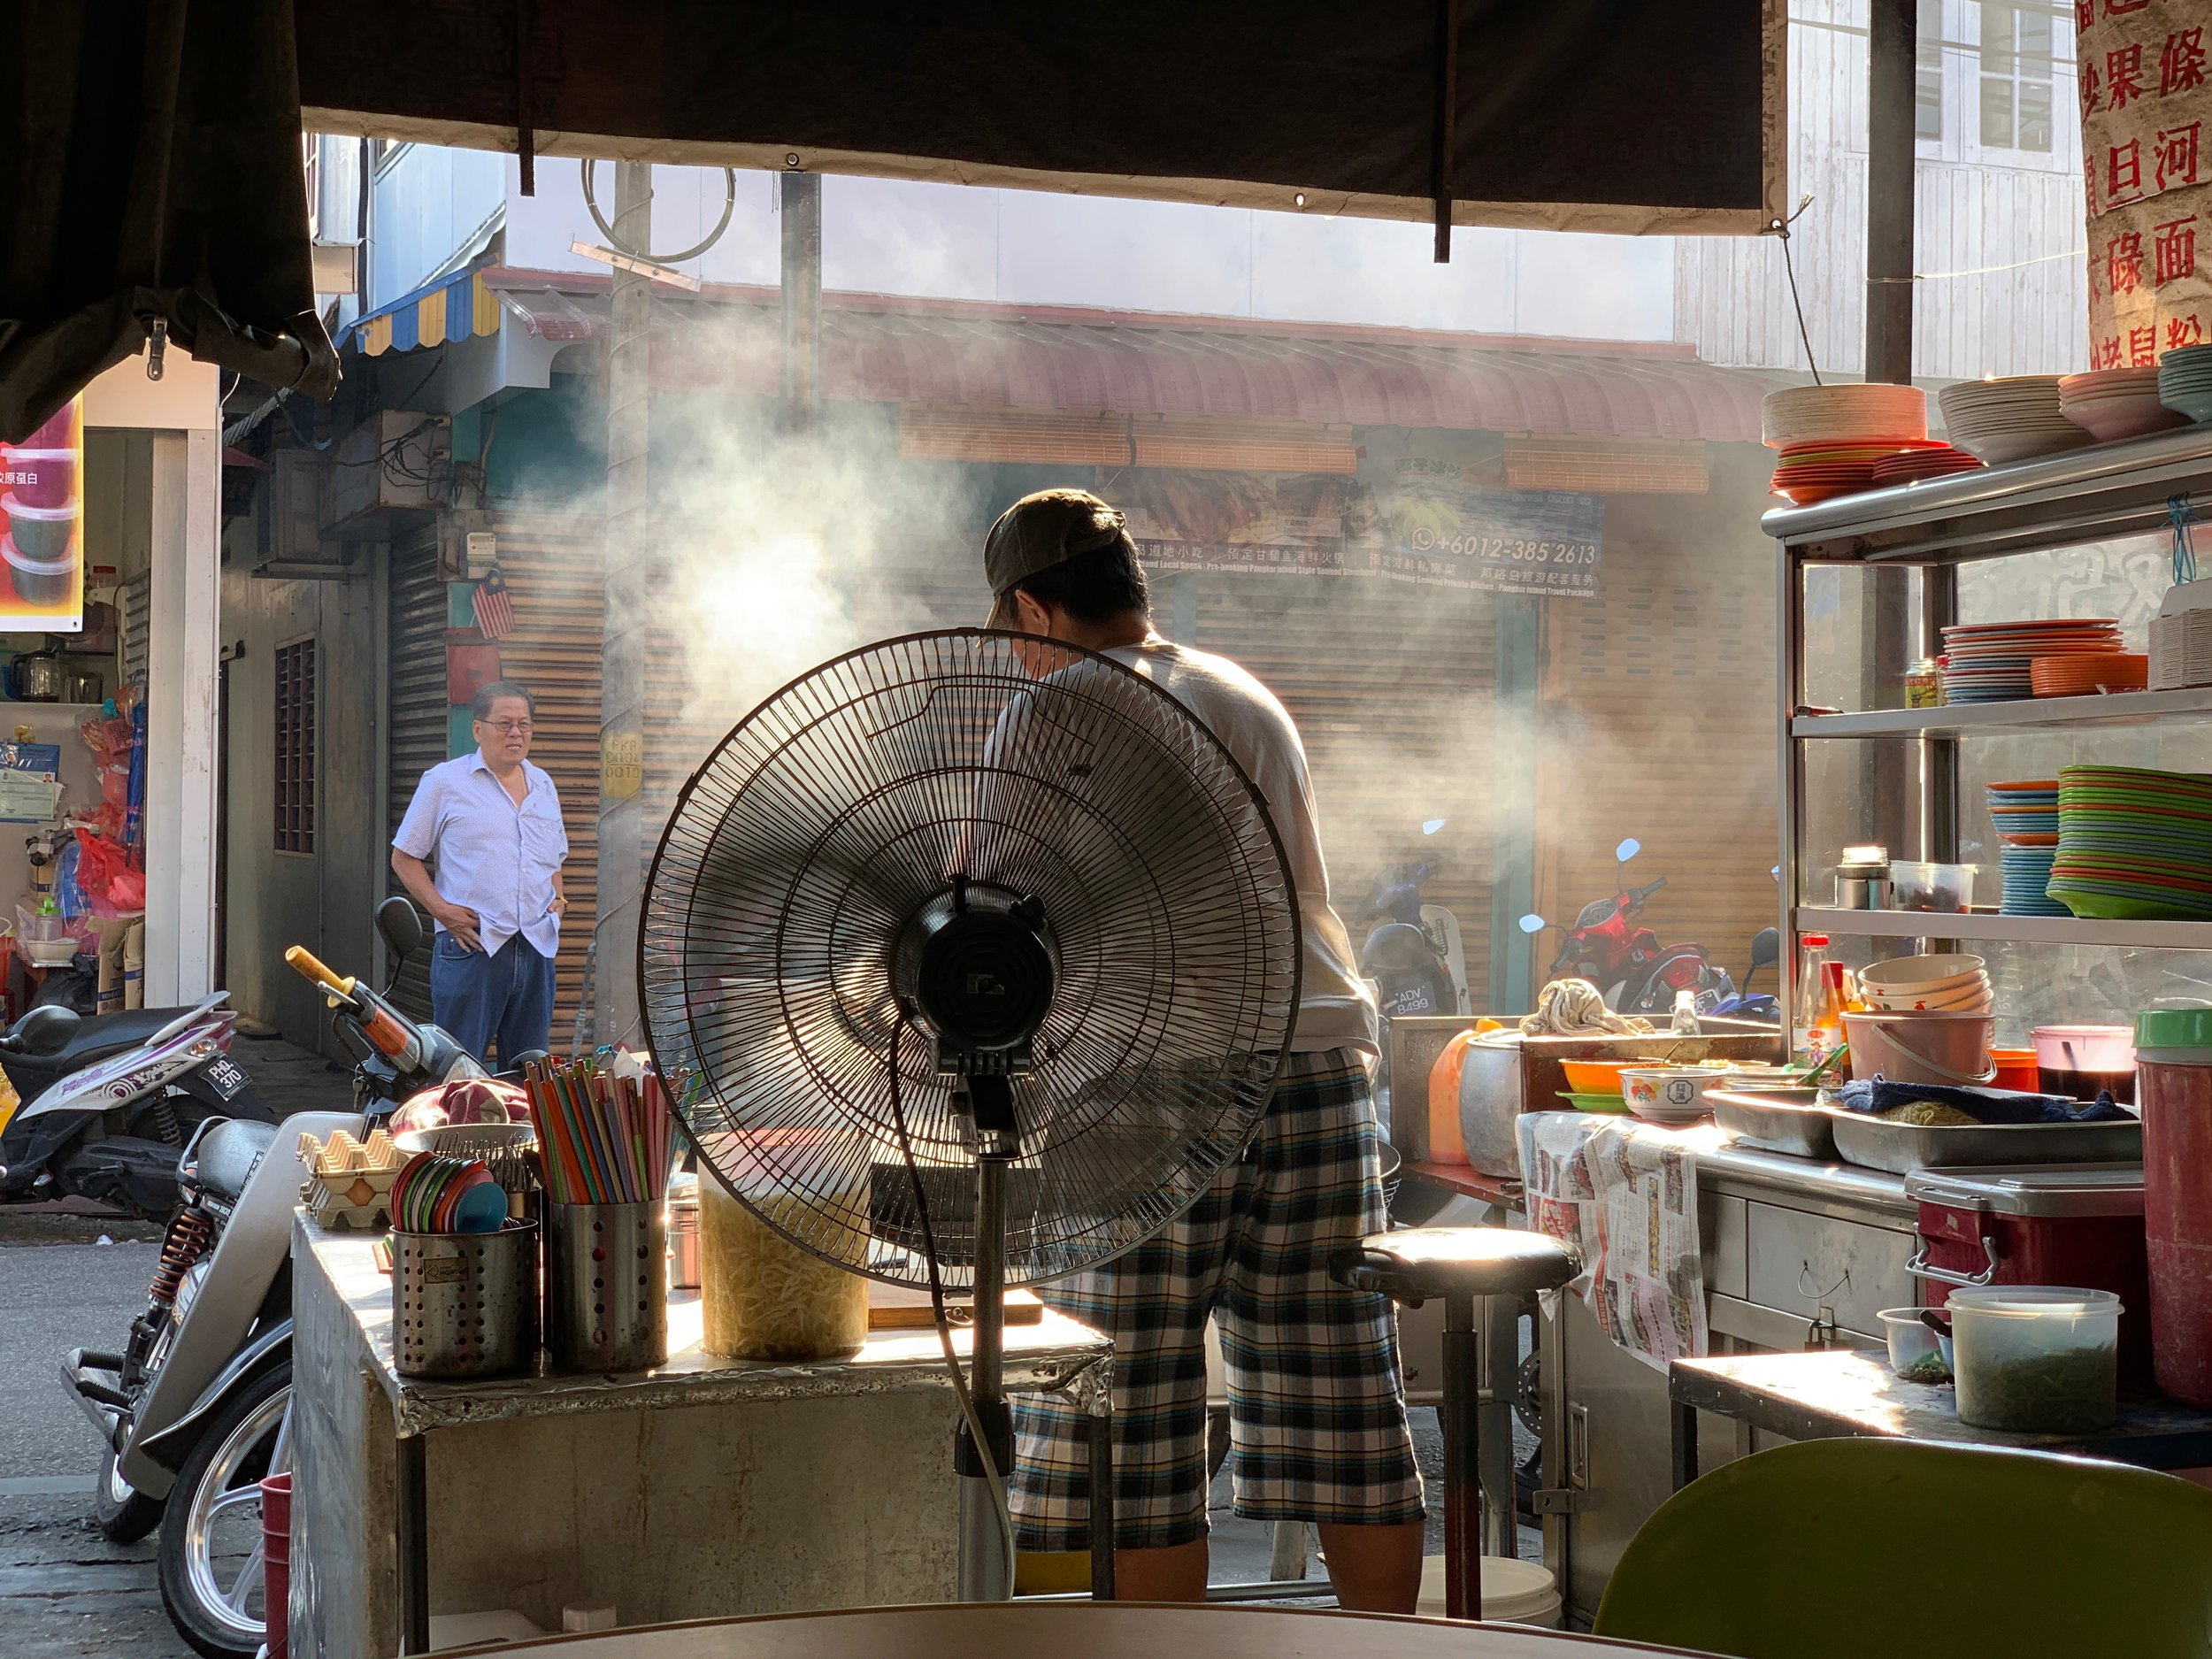 Keeping cool while cooking at one of the breakfast food stalls